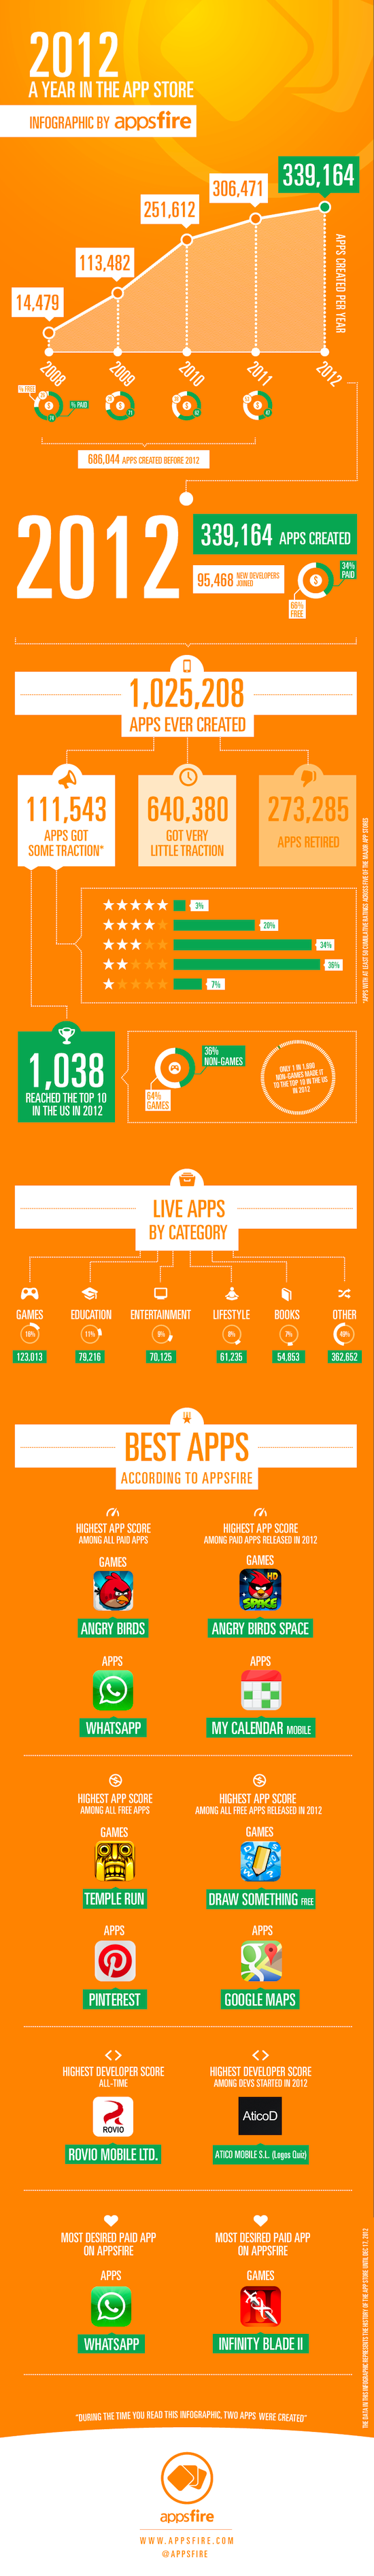 appsfire-2012-a-year-in-the-app-store-1